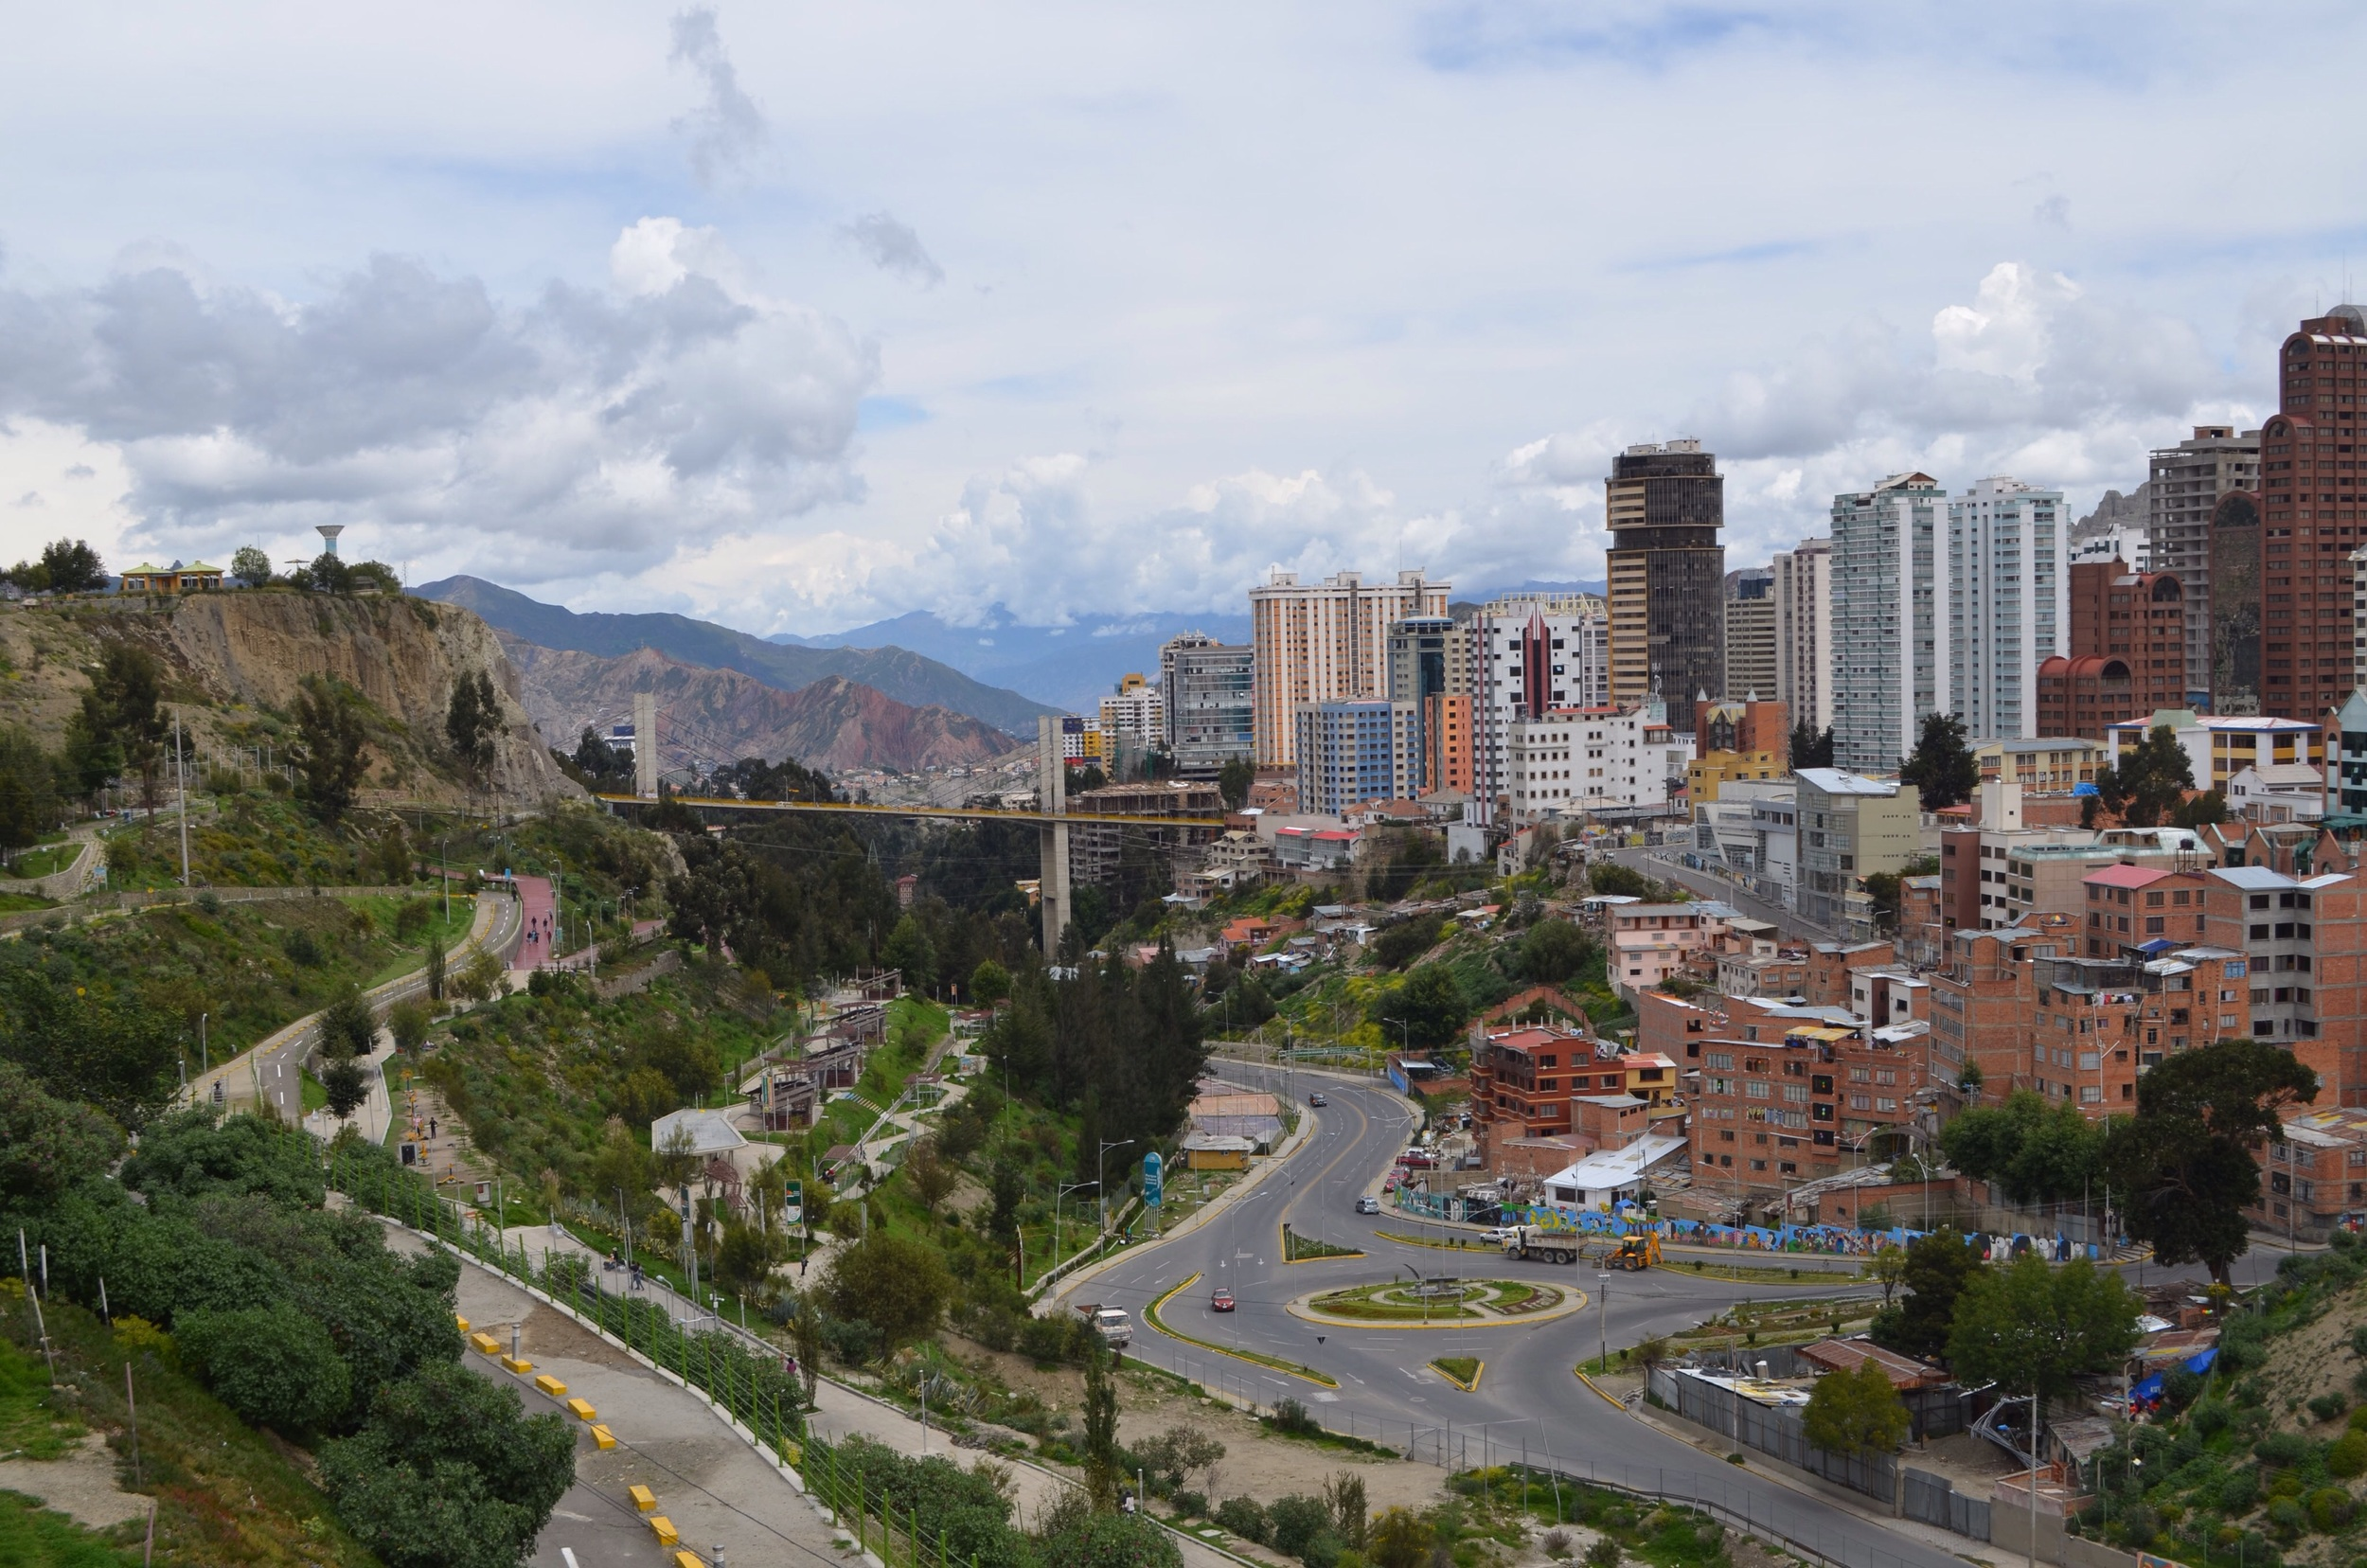 the view from apedestrian catwalk in Parque Miraflores// 17 February